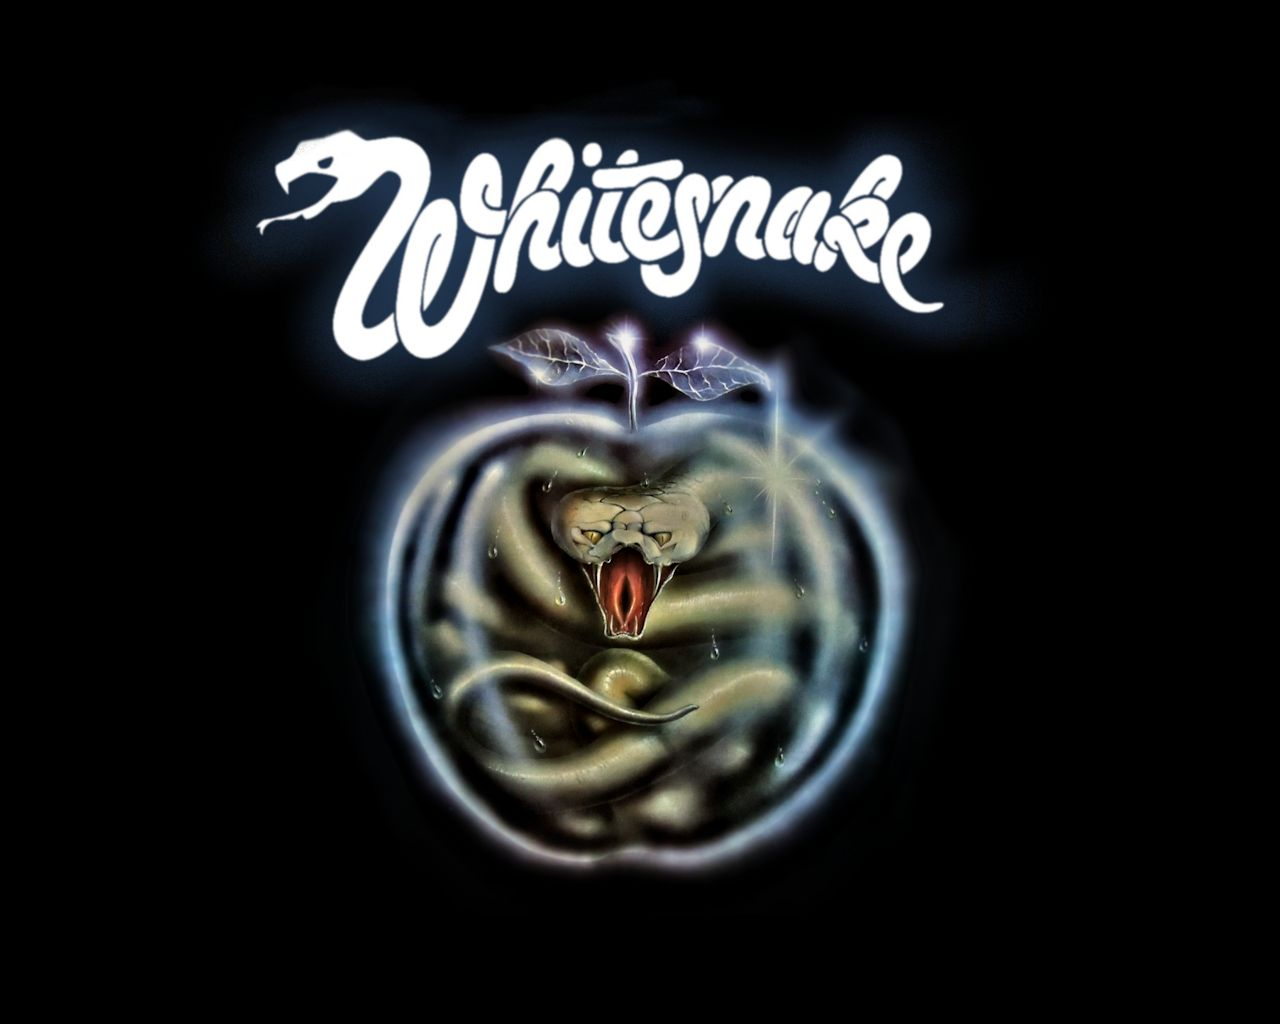 Whitesnake Wallpaper - WallpaperSafari